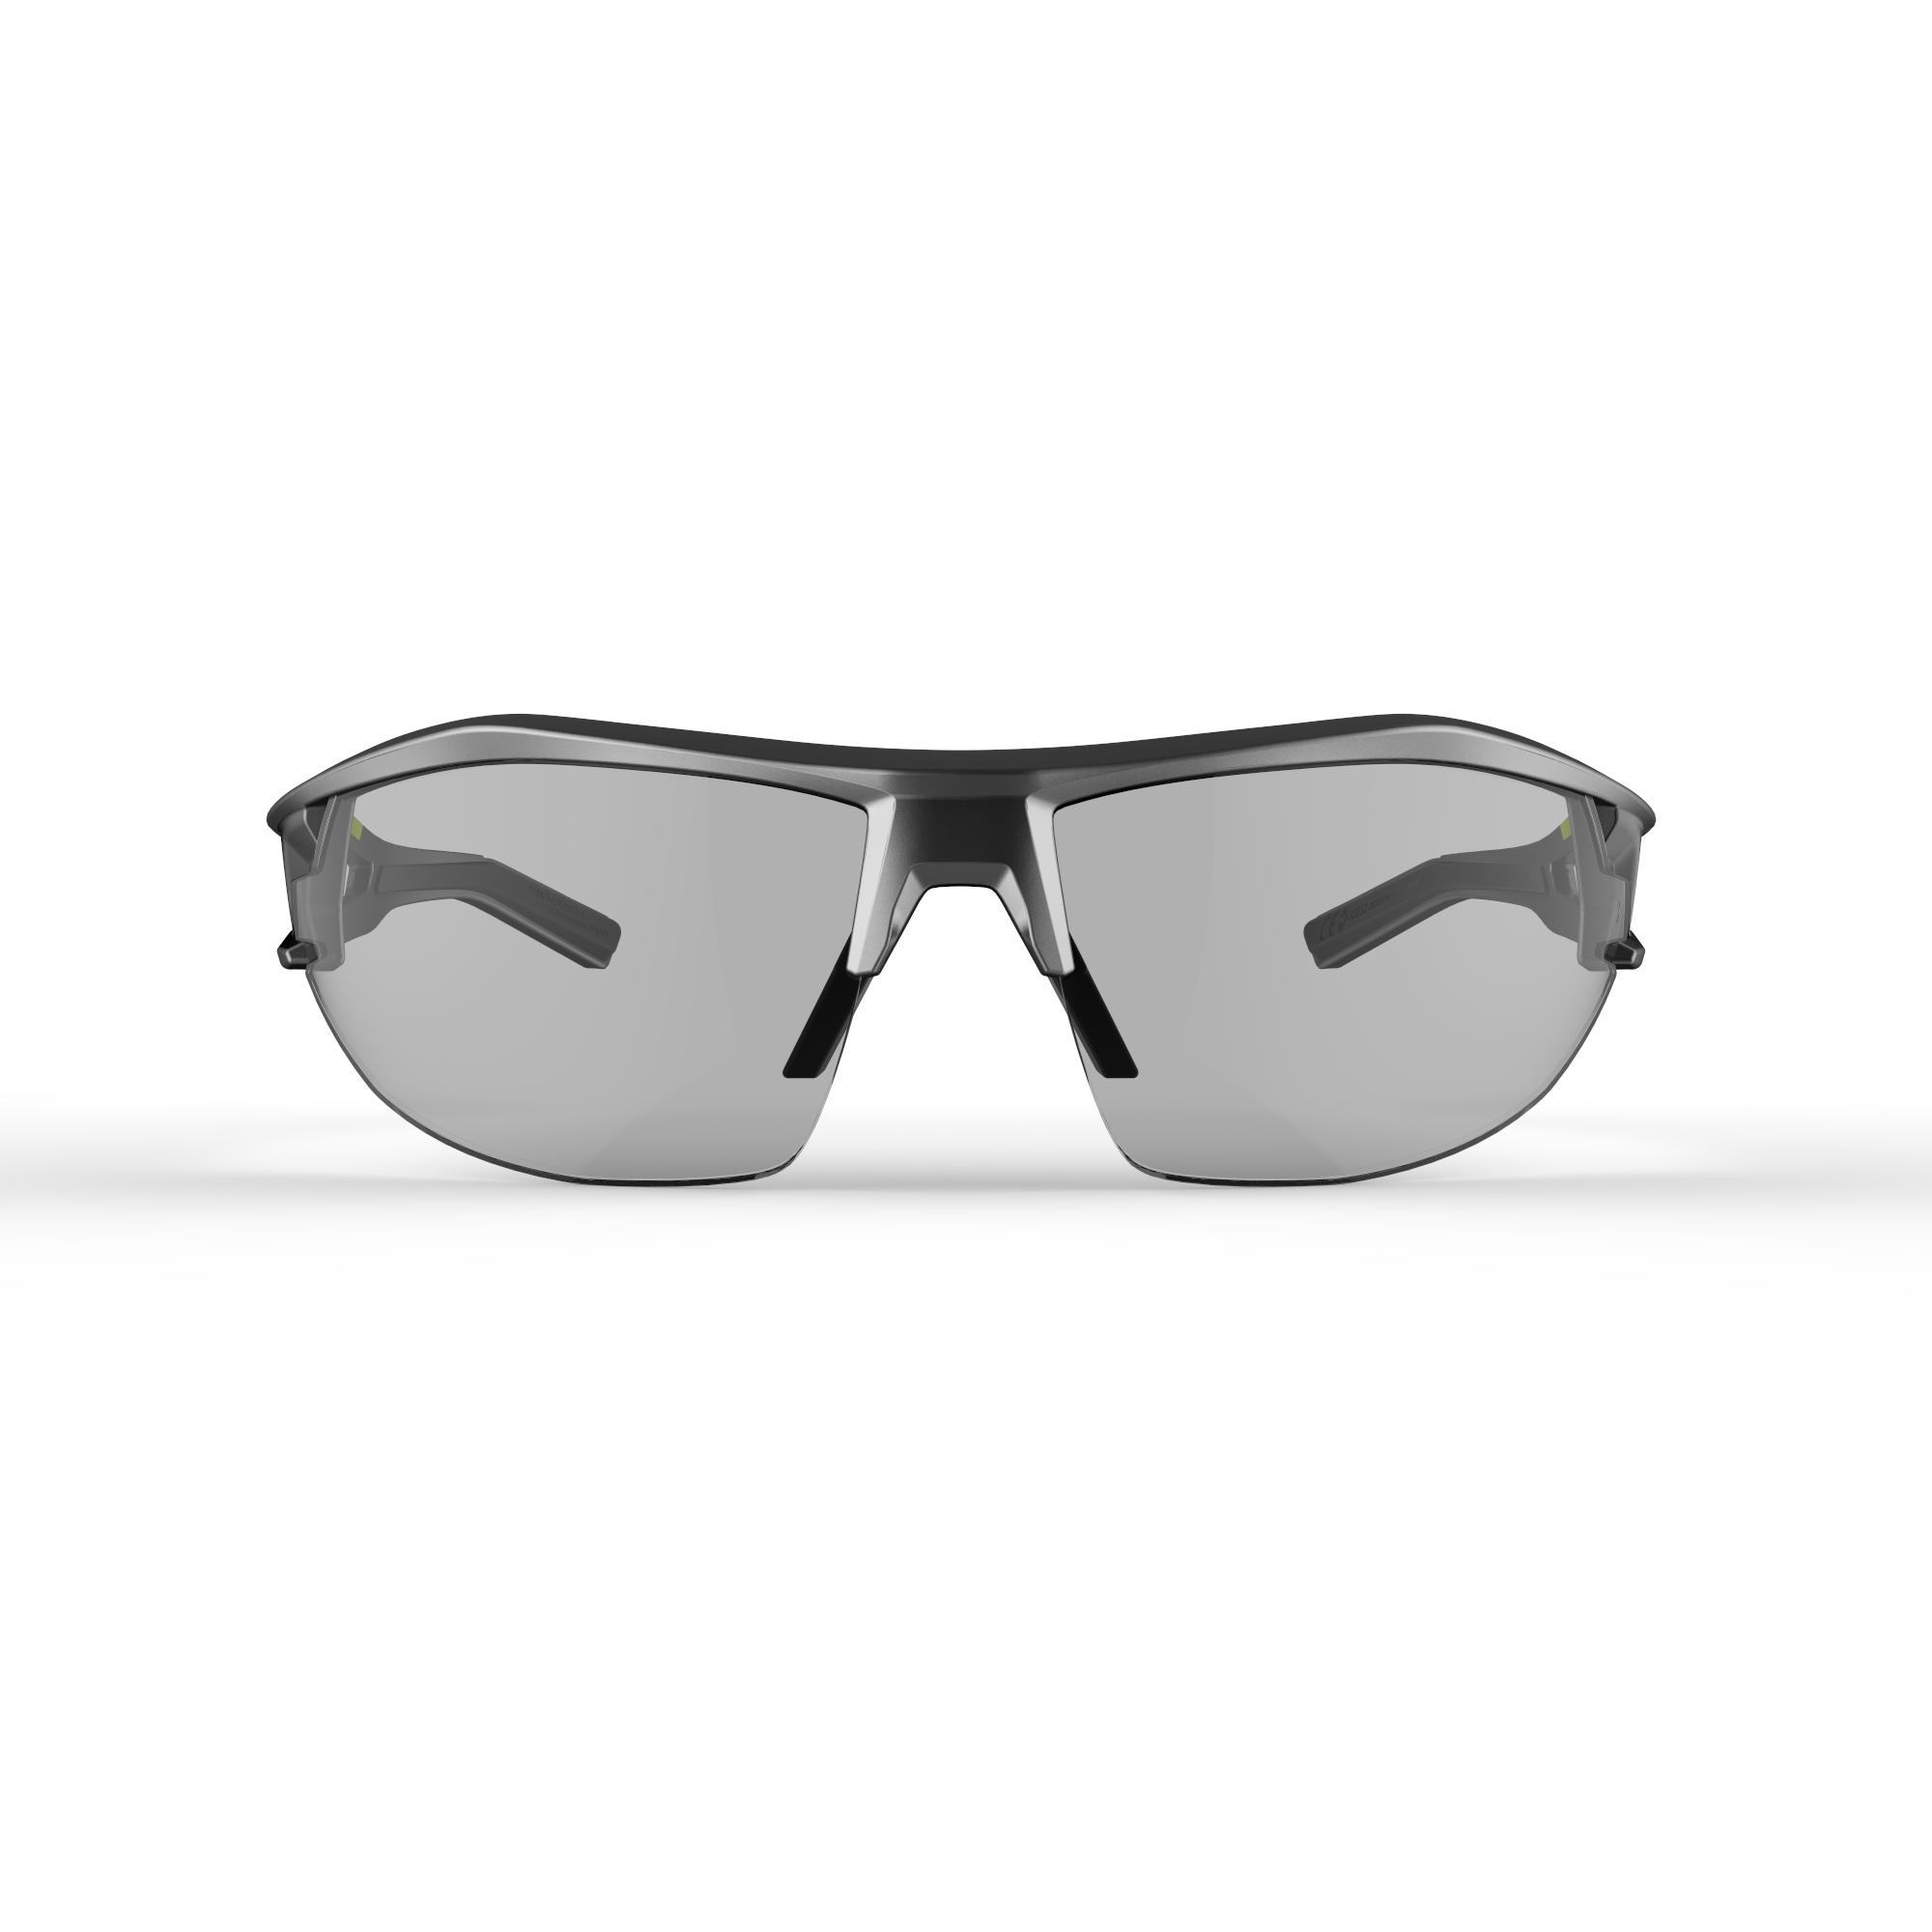 XC 120 Adult MTB Photochromic Sunglasses Category 1 to 3 - Grey and Black